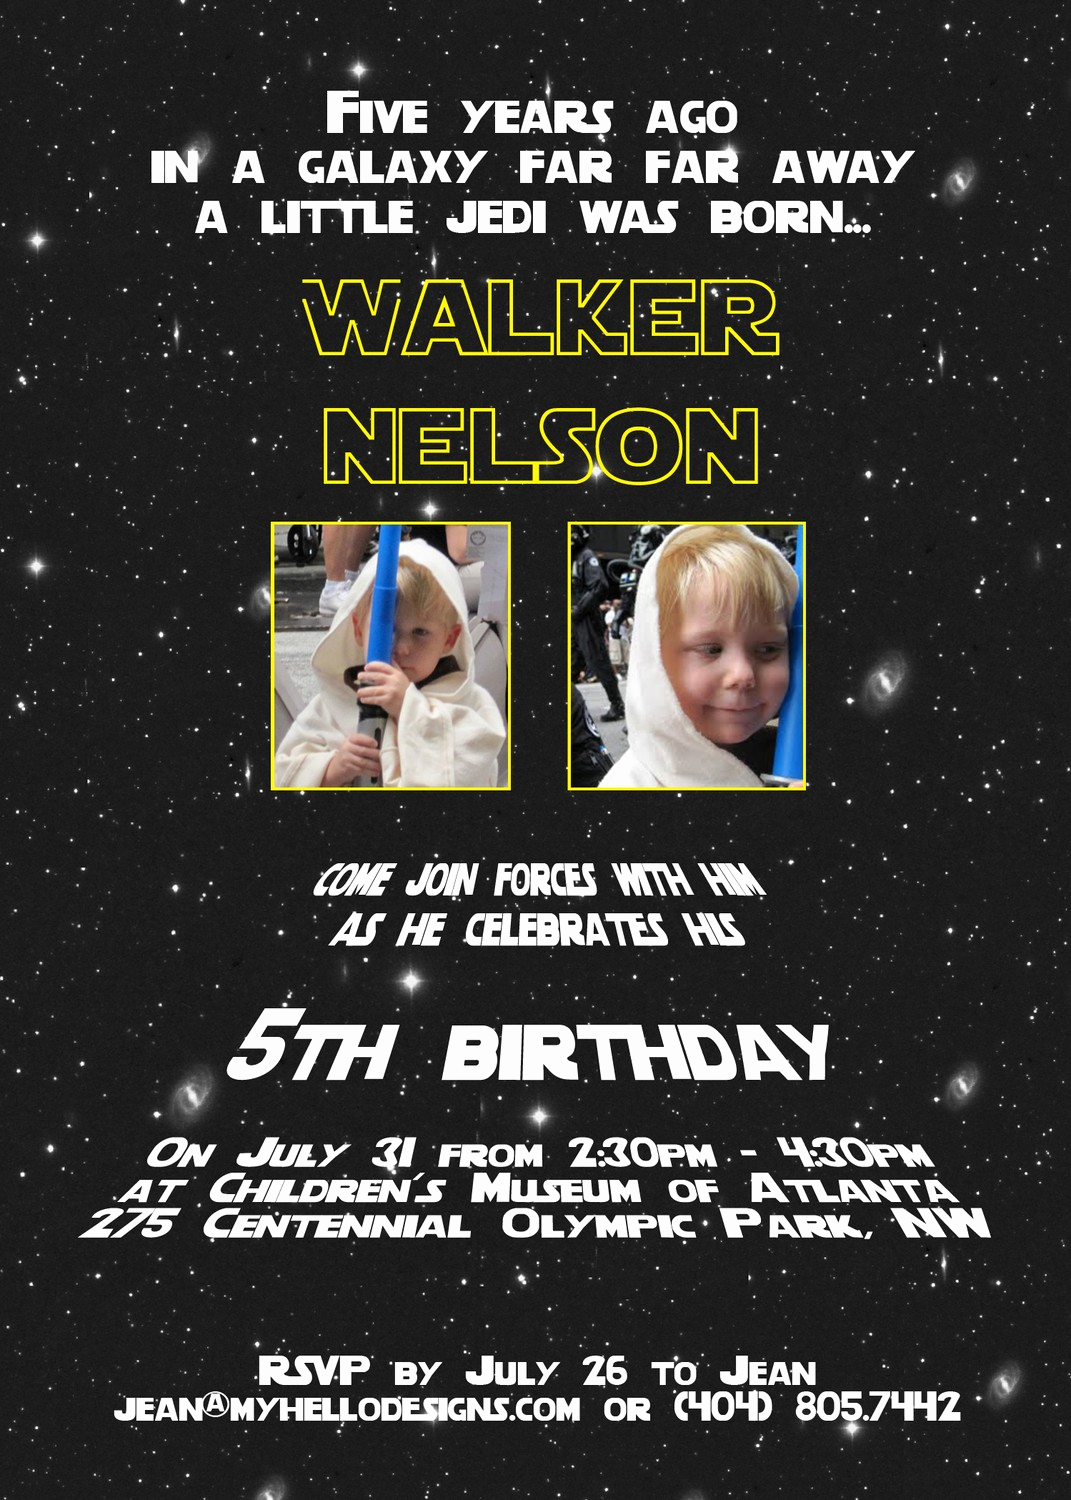 Star Wars Birthday Invitation Lovely Star Wars Birthday Invitations Wording